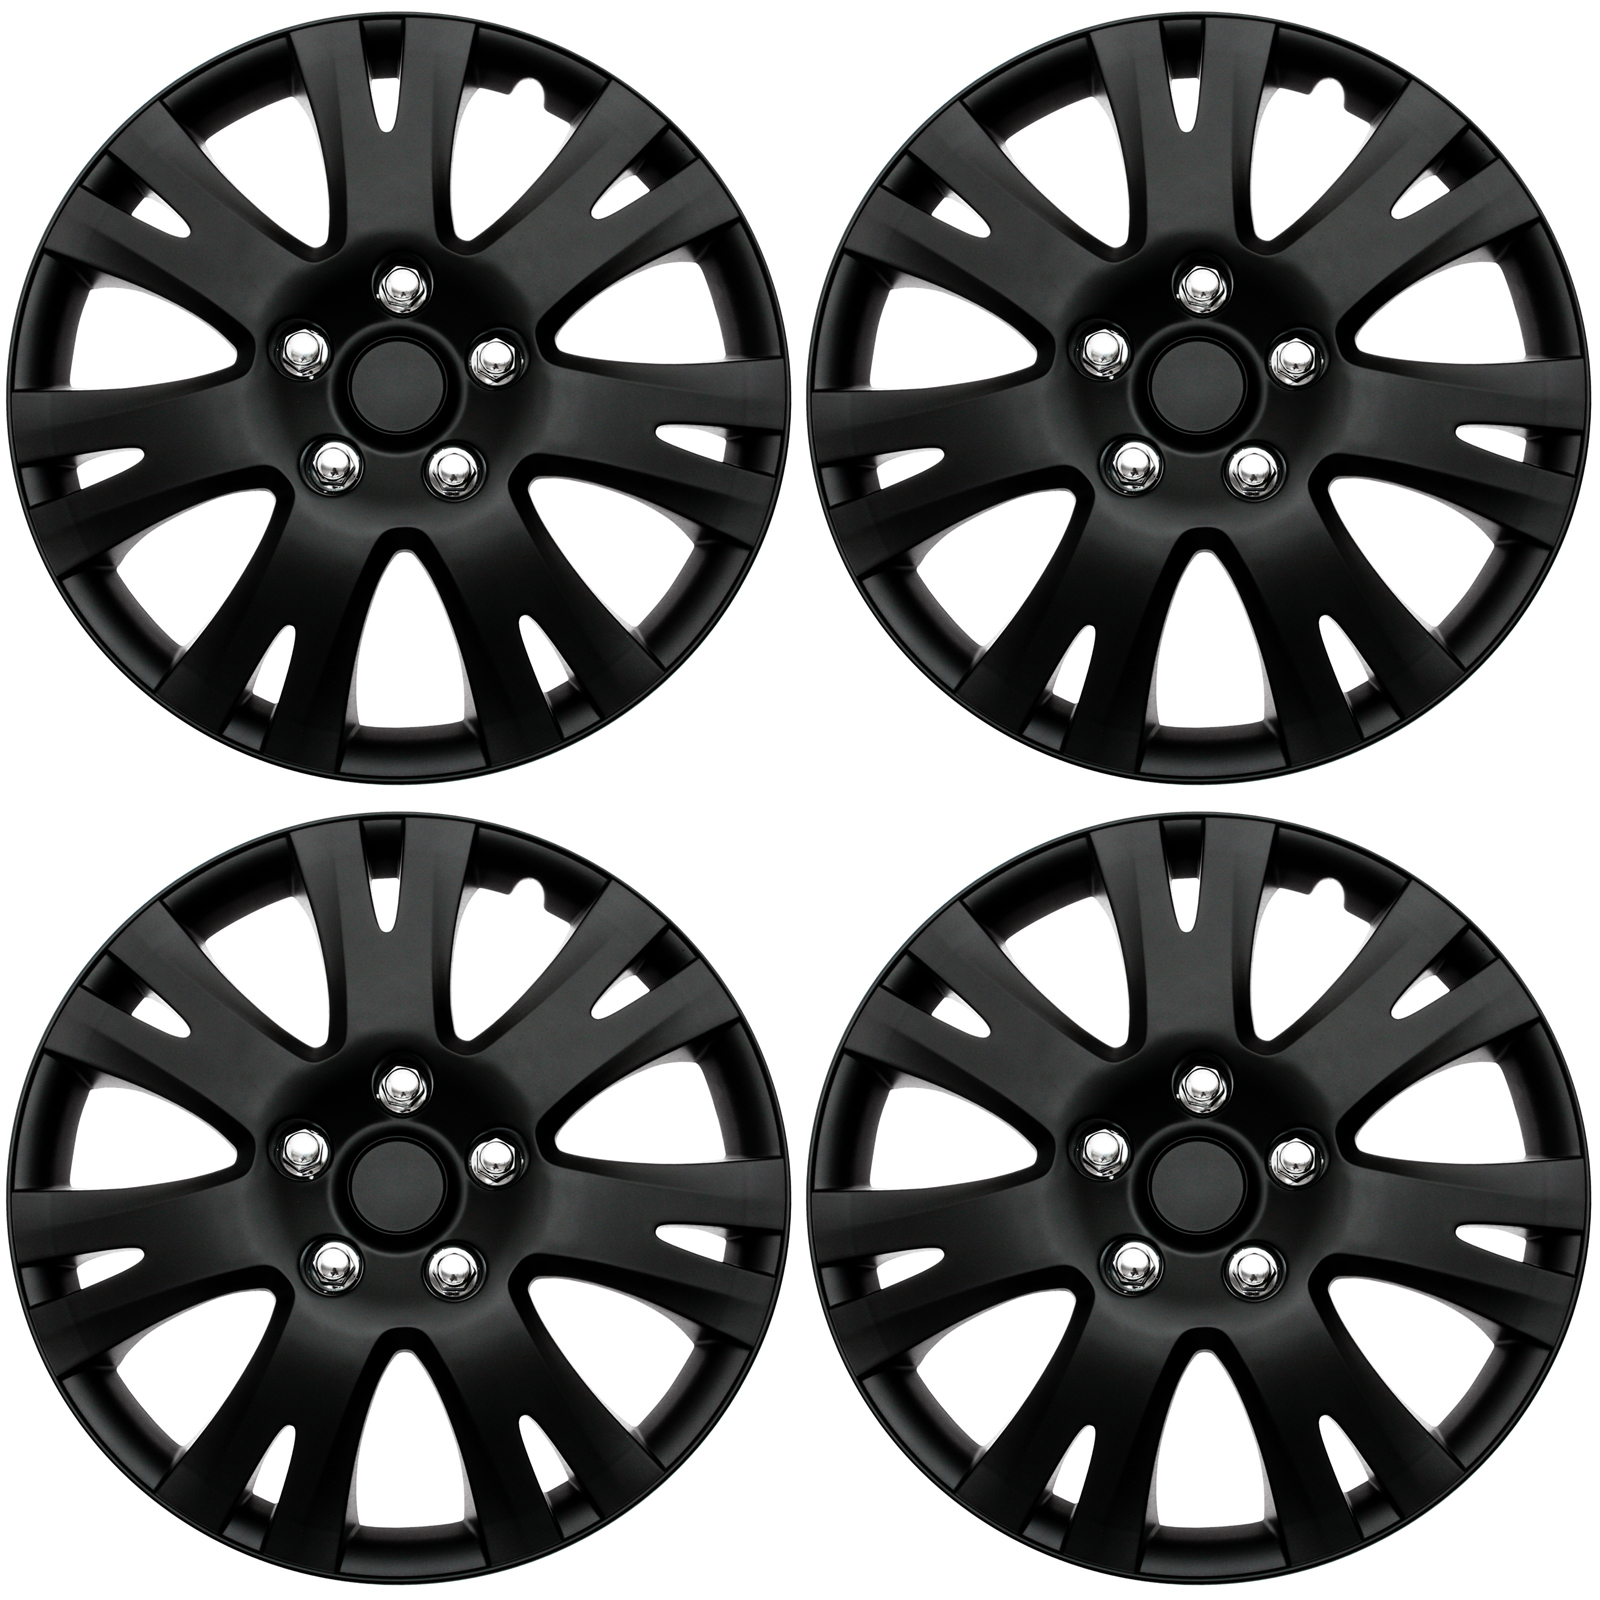 hubcaps 1956 Dodge Station Wagon 4 pc set hub cap abs black matte 16 inch for oem steel wheel cover